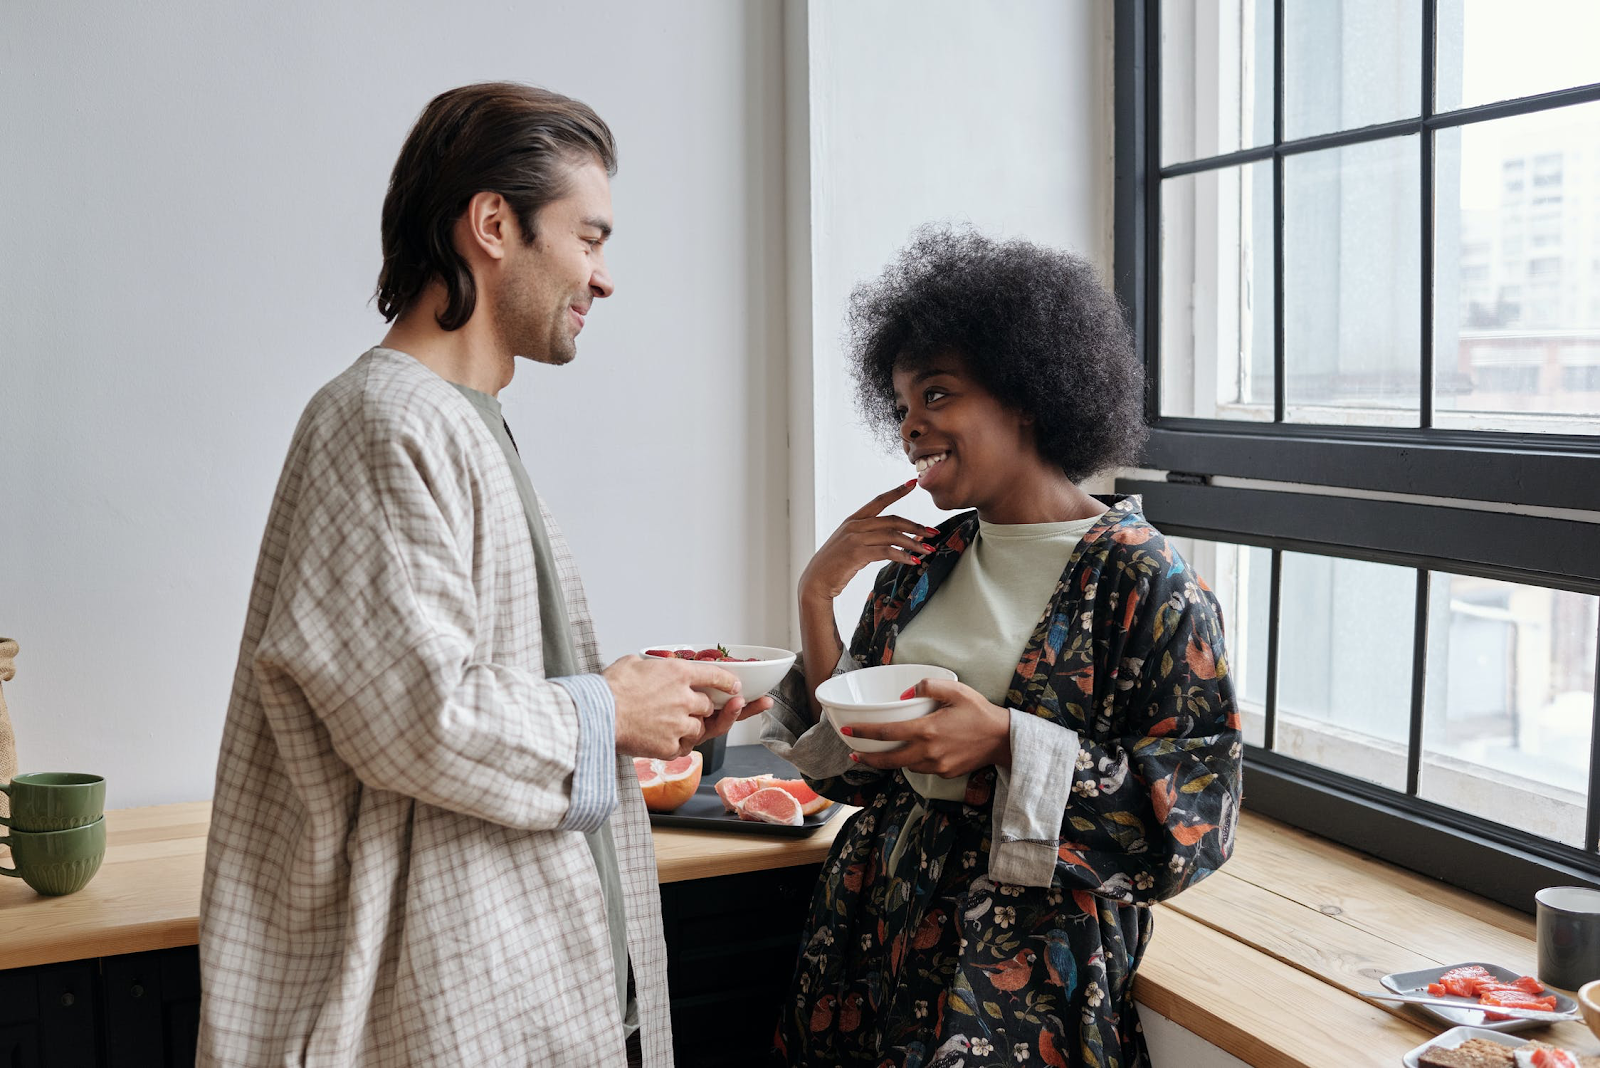 Photo of man and woman talking over breakfast